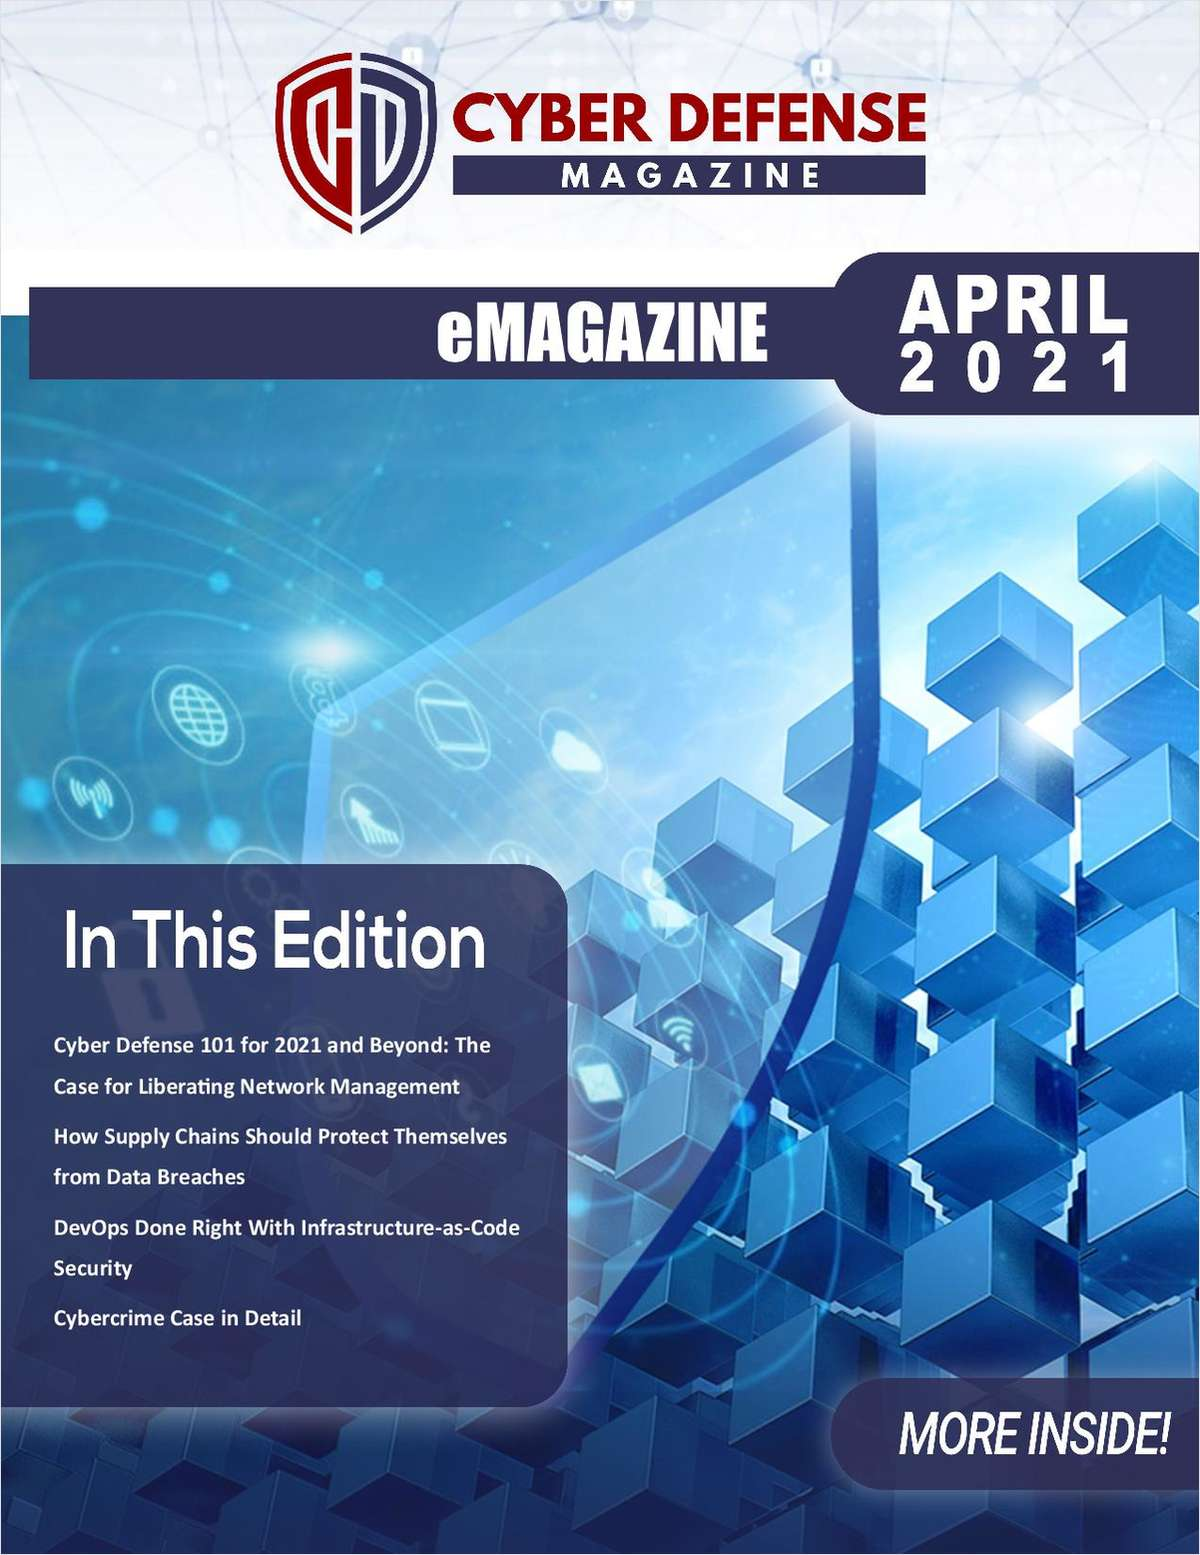 Cyber Defense Magazine April 2021 Edition